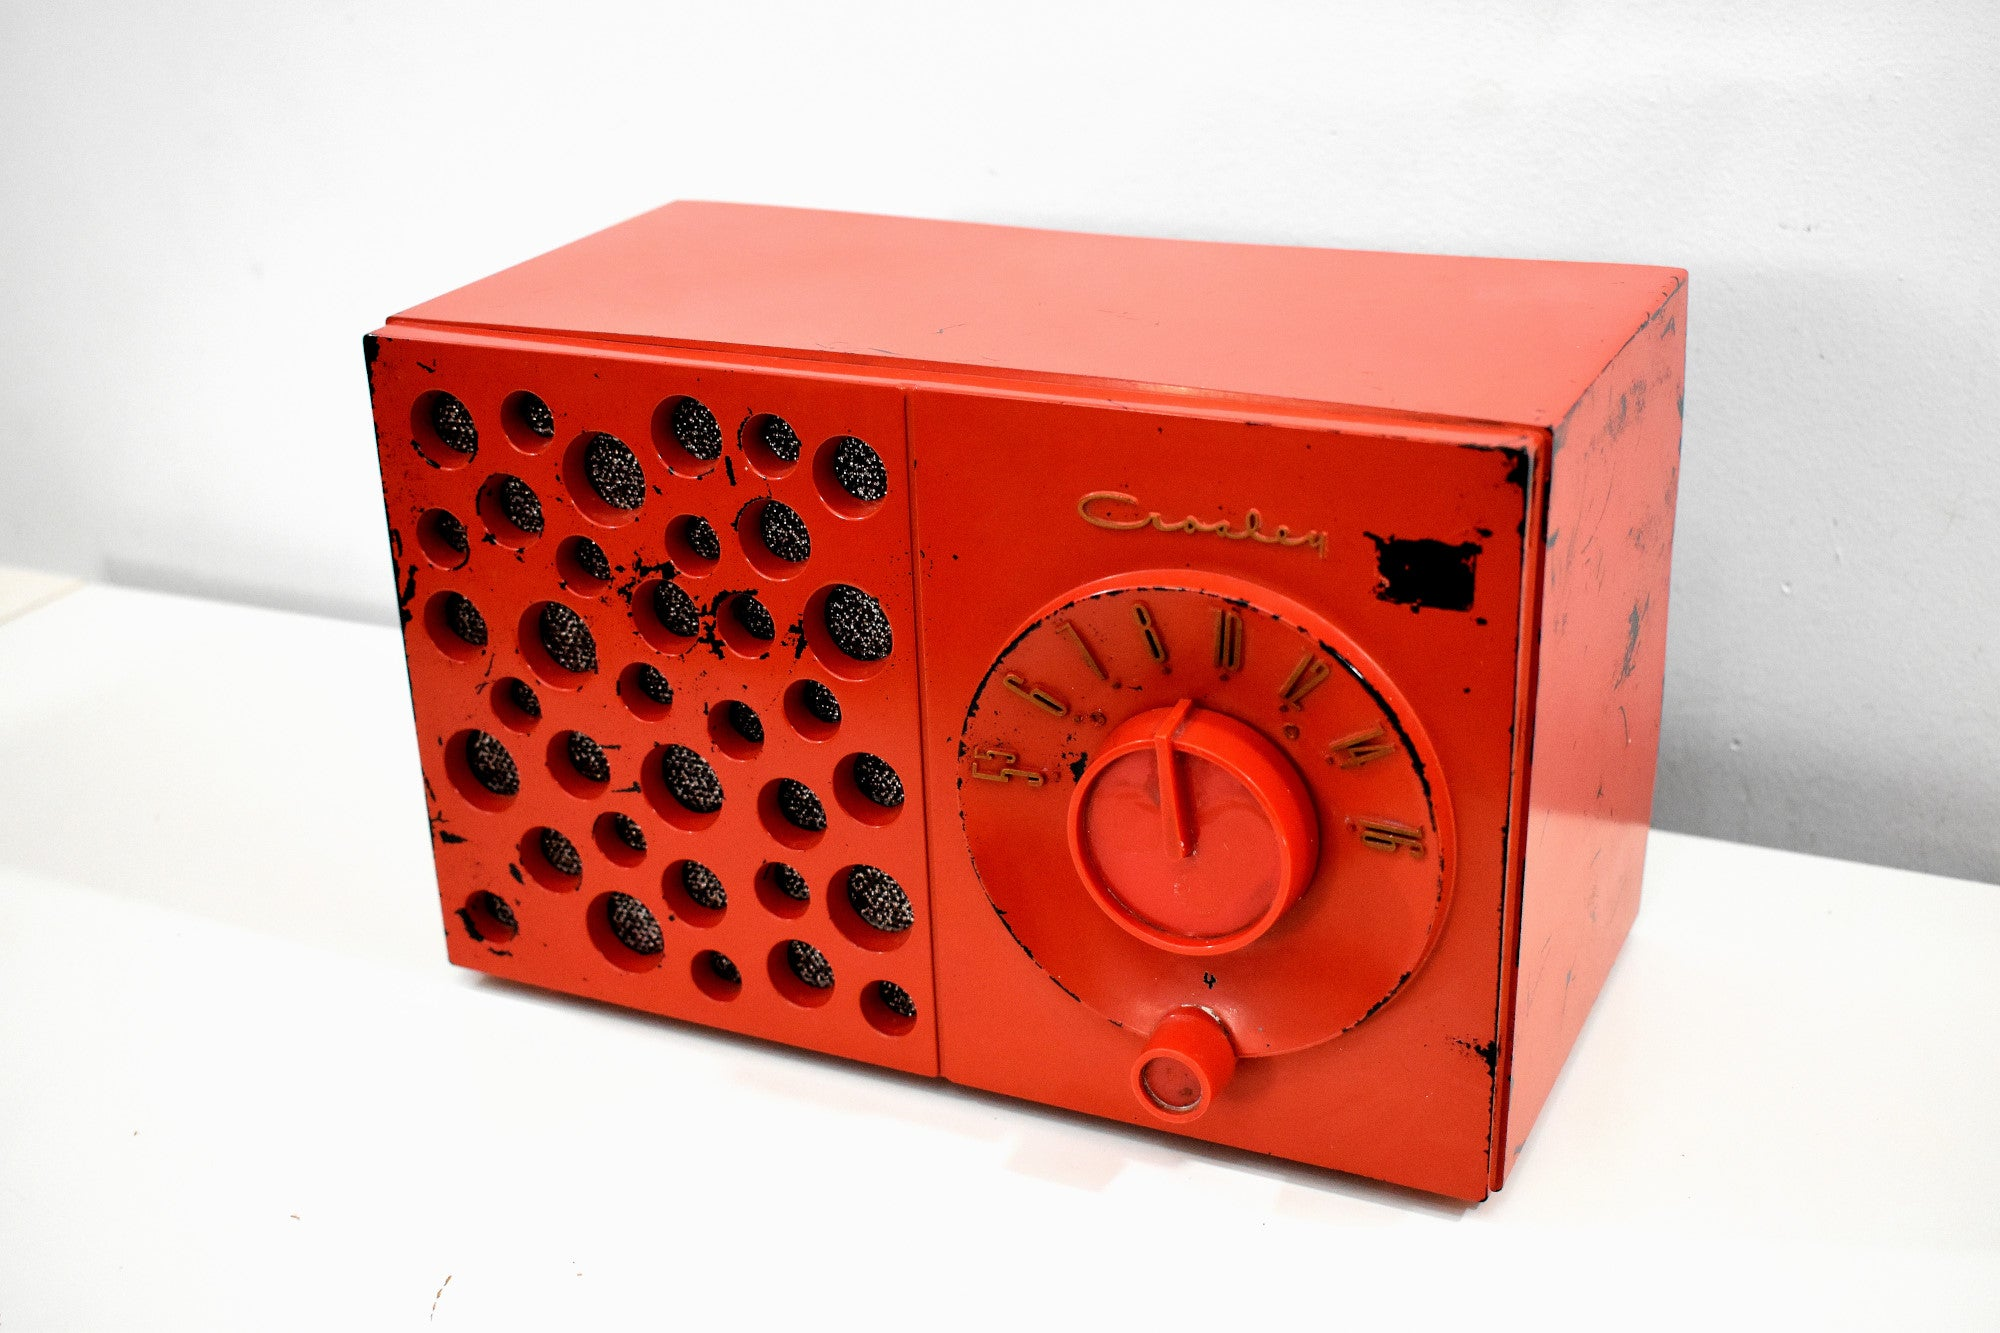 Raconteur Red 1953 Crosley Model JT-3 AM Tube Radio Swiss Cheese Grill, Not Cheesy At All